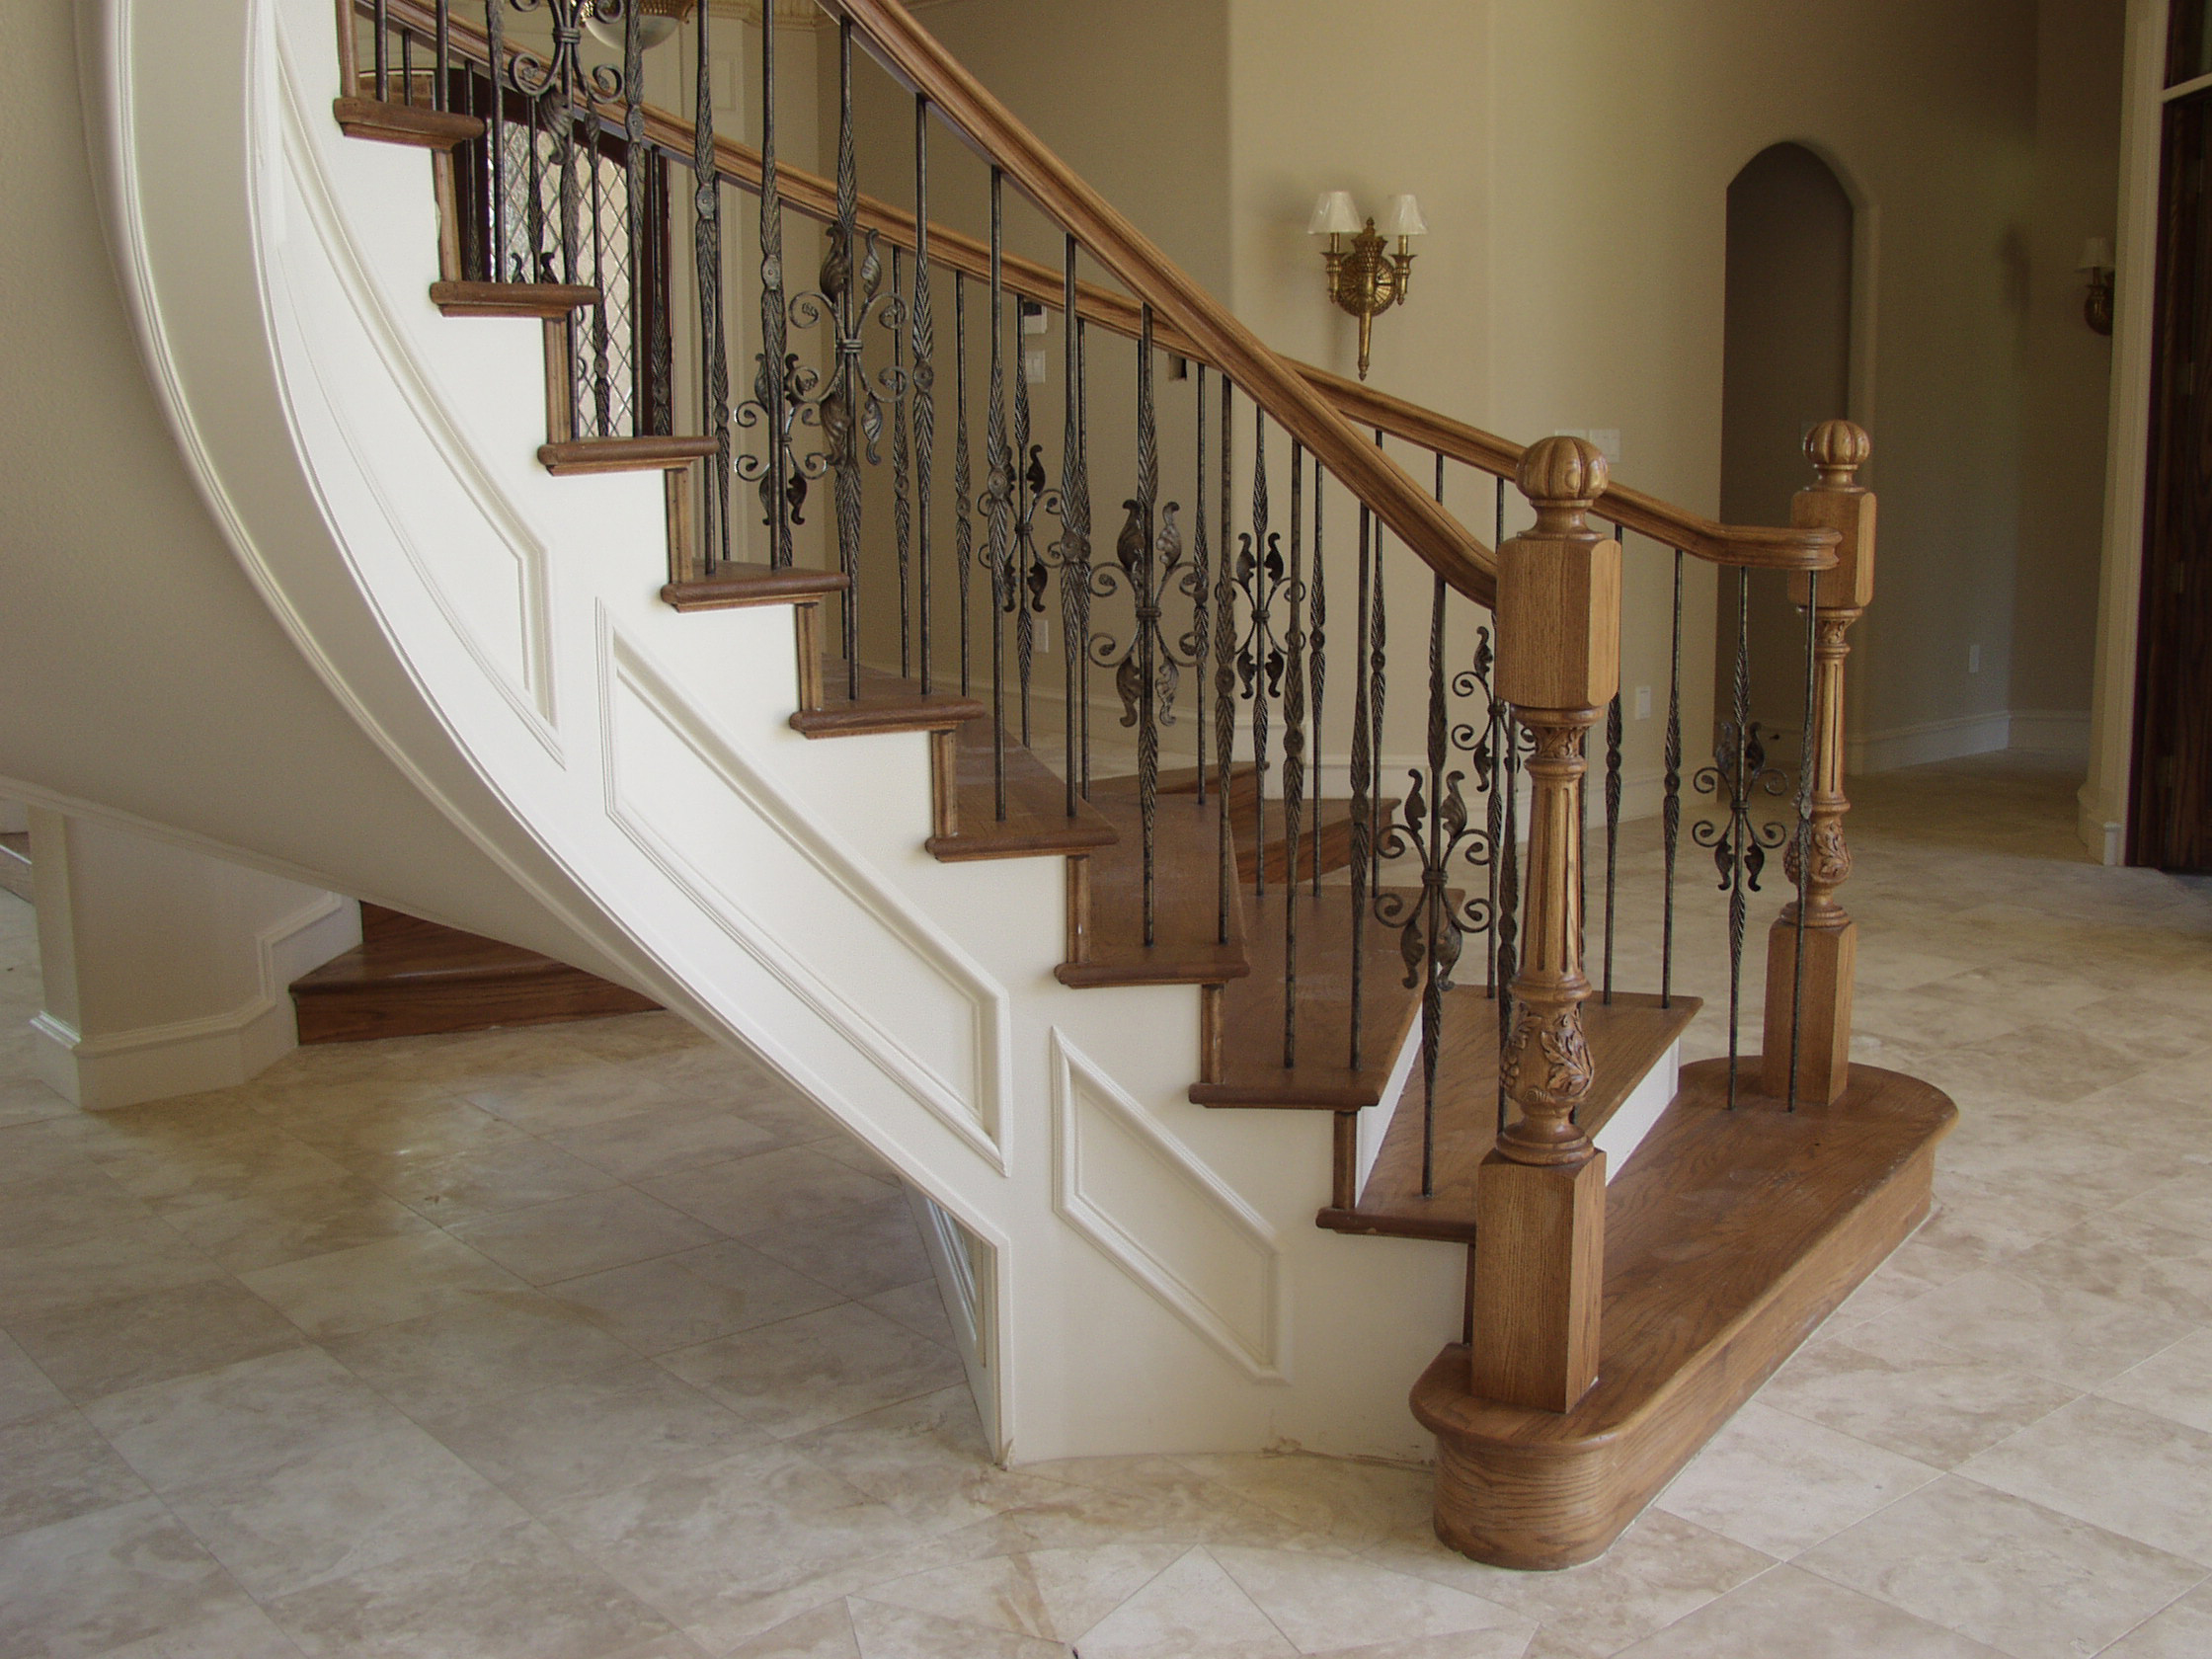 HF16.1.19 with Feathered Iron Balusters